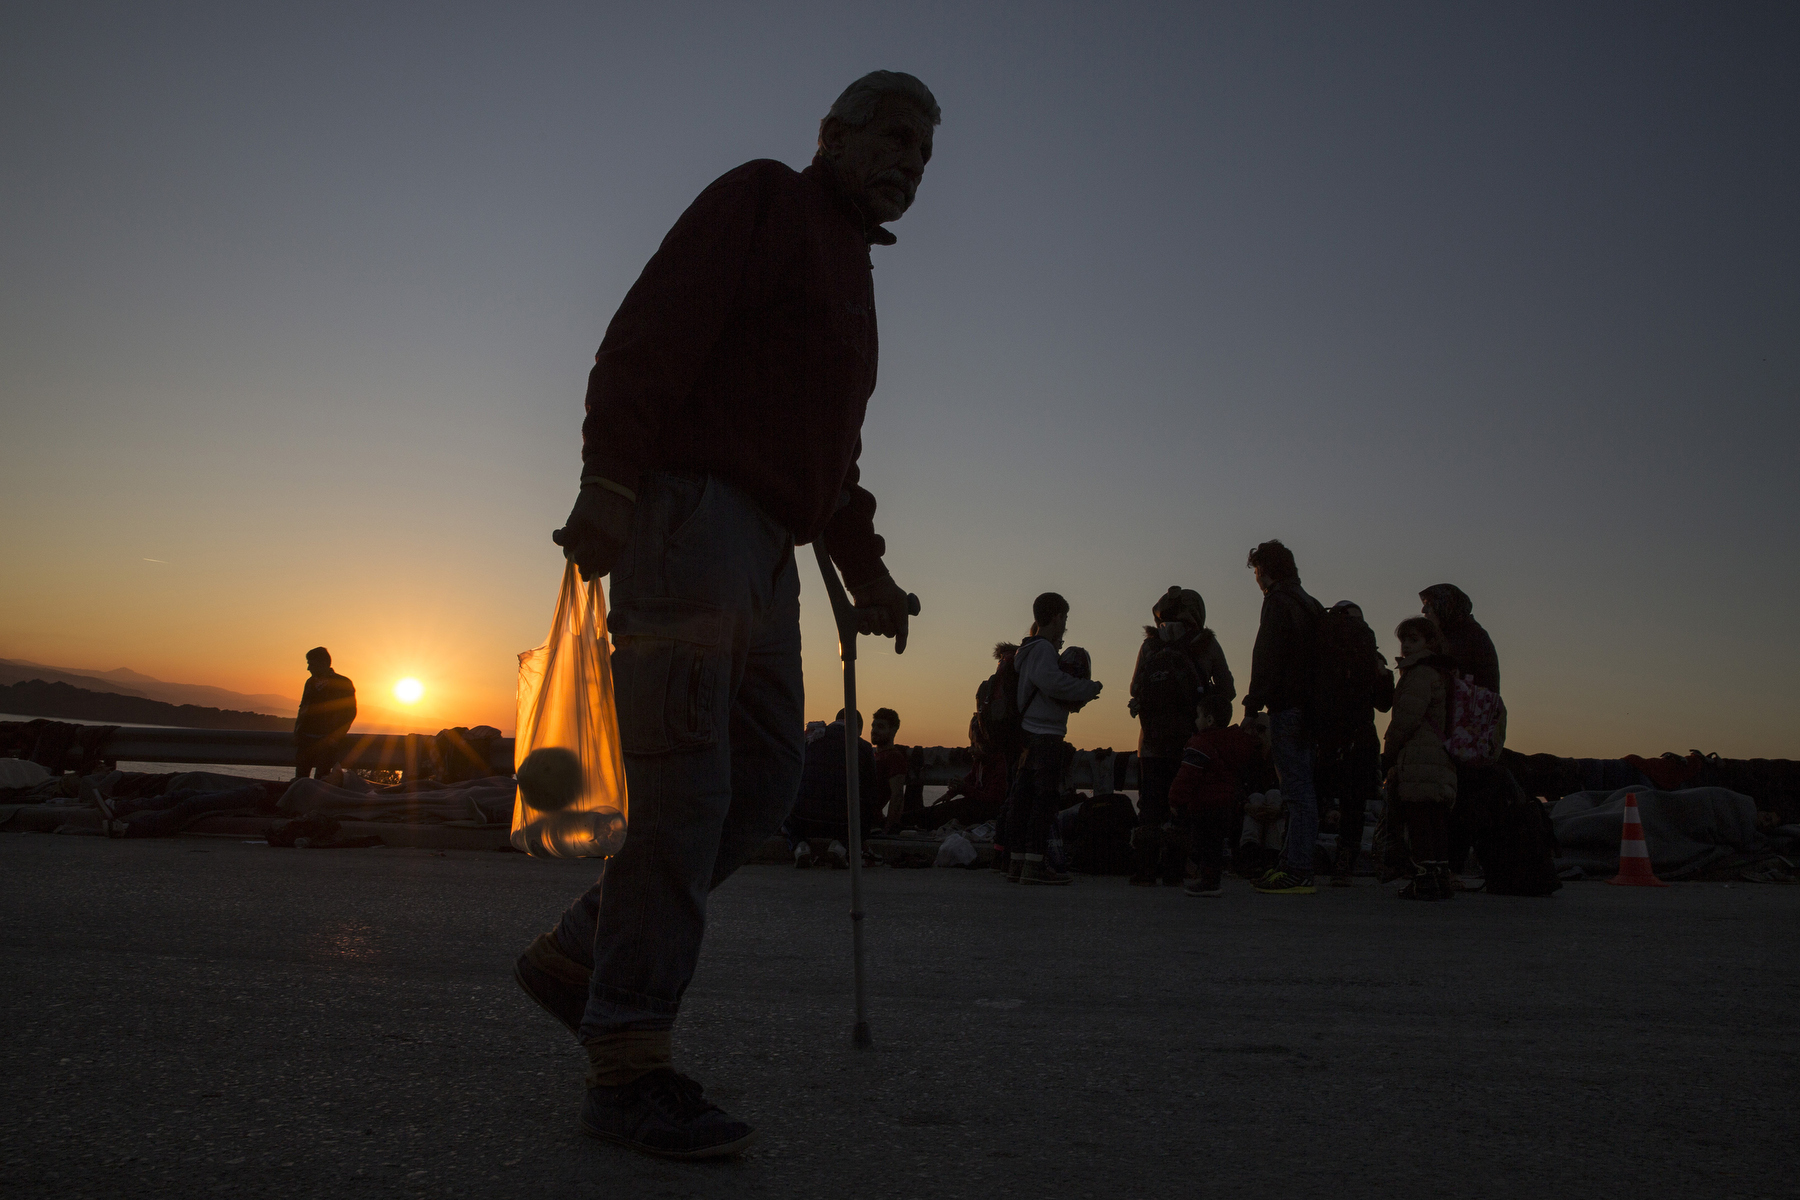 LESBOS, GREECE - NOVEMBER 4 :  A handicapped Syrian refugee man carries some food as the sunsets at Oxy transitional camp  on Lesbos, Greece on November 4 , 2015.  Dozens of rafts and boats are still making the journey daily over 590,000 people have crossed into the gateway of Europe. Nearly all of those are from the war zones of Syria, Iraq and Afghanistan. (Photo by Paula Bronstein)